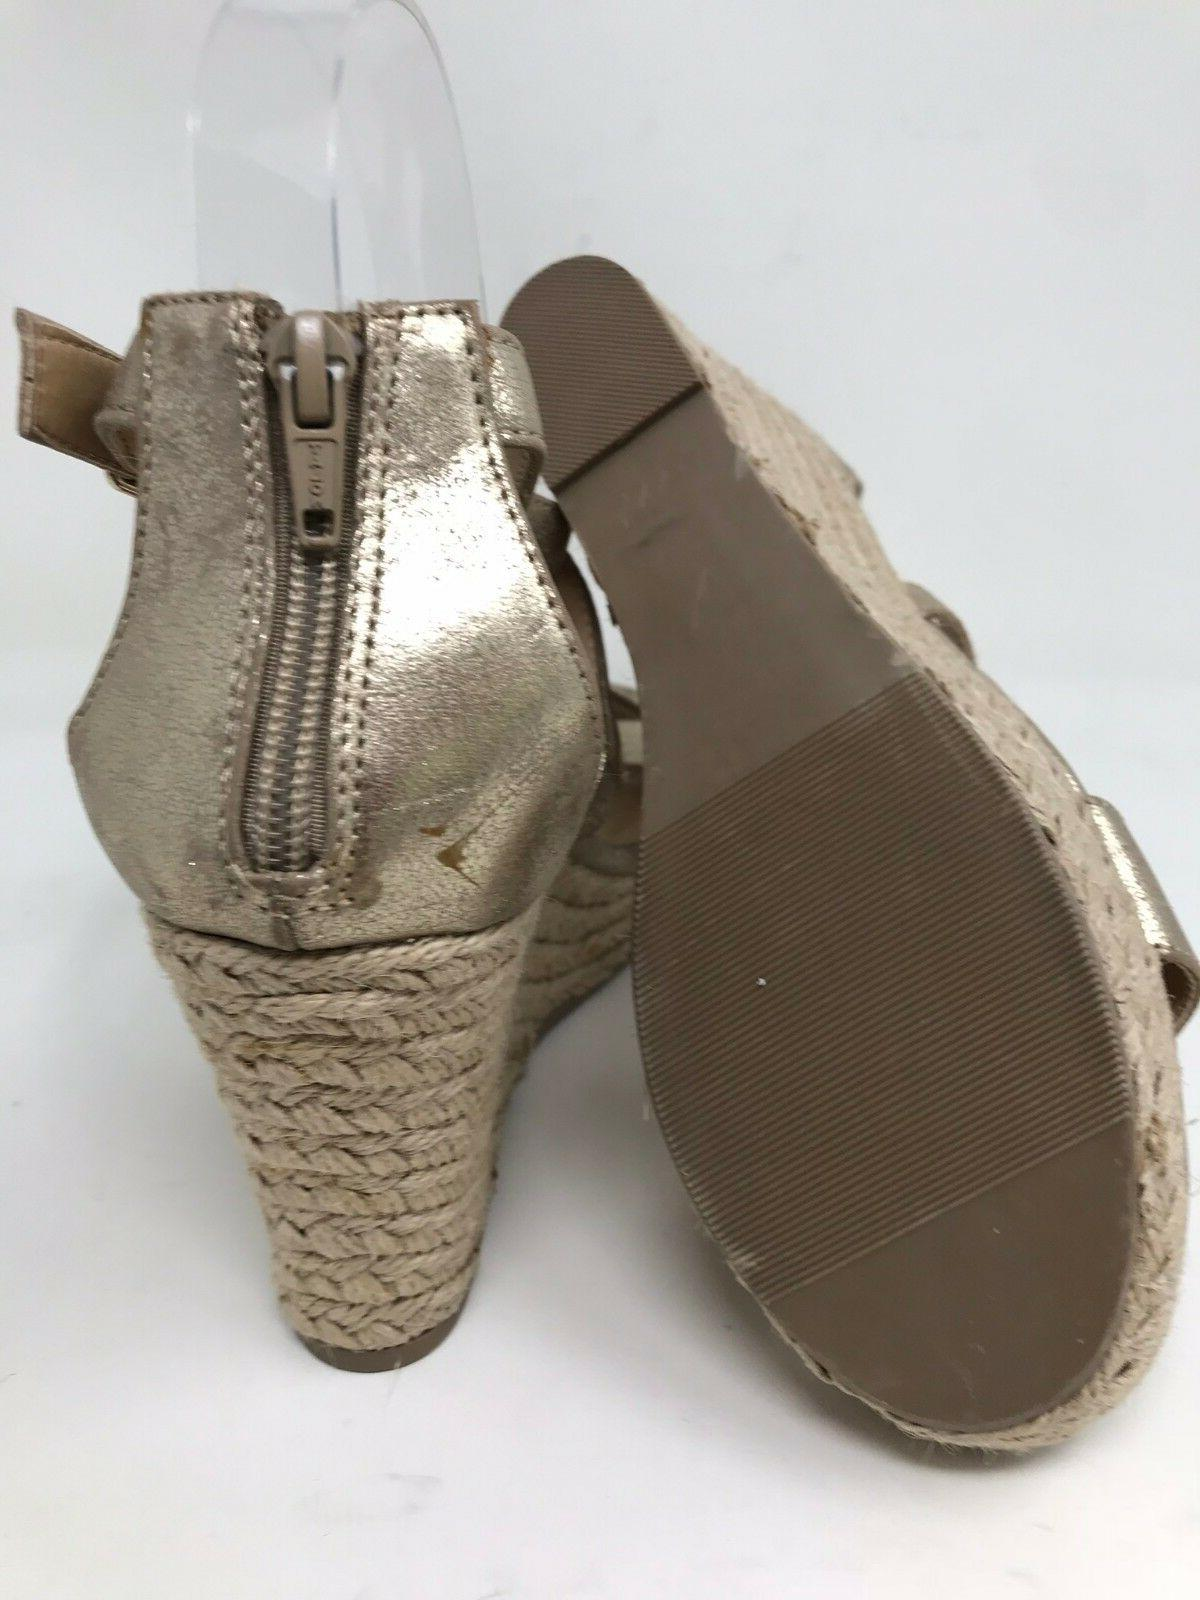 New w/ Defects! Candie's 160089 Sandals - Gold